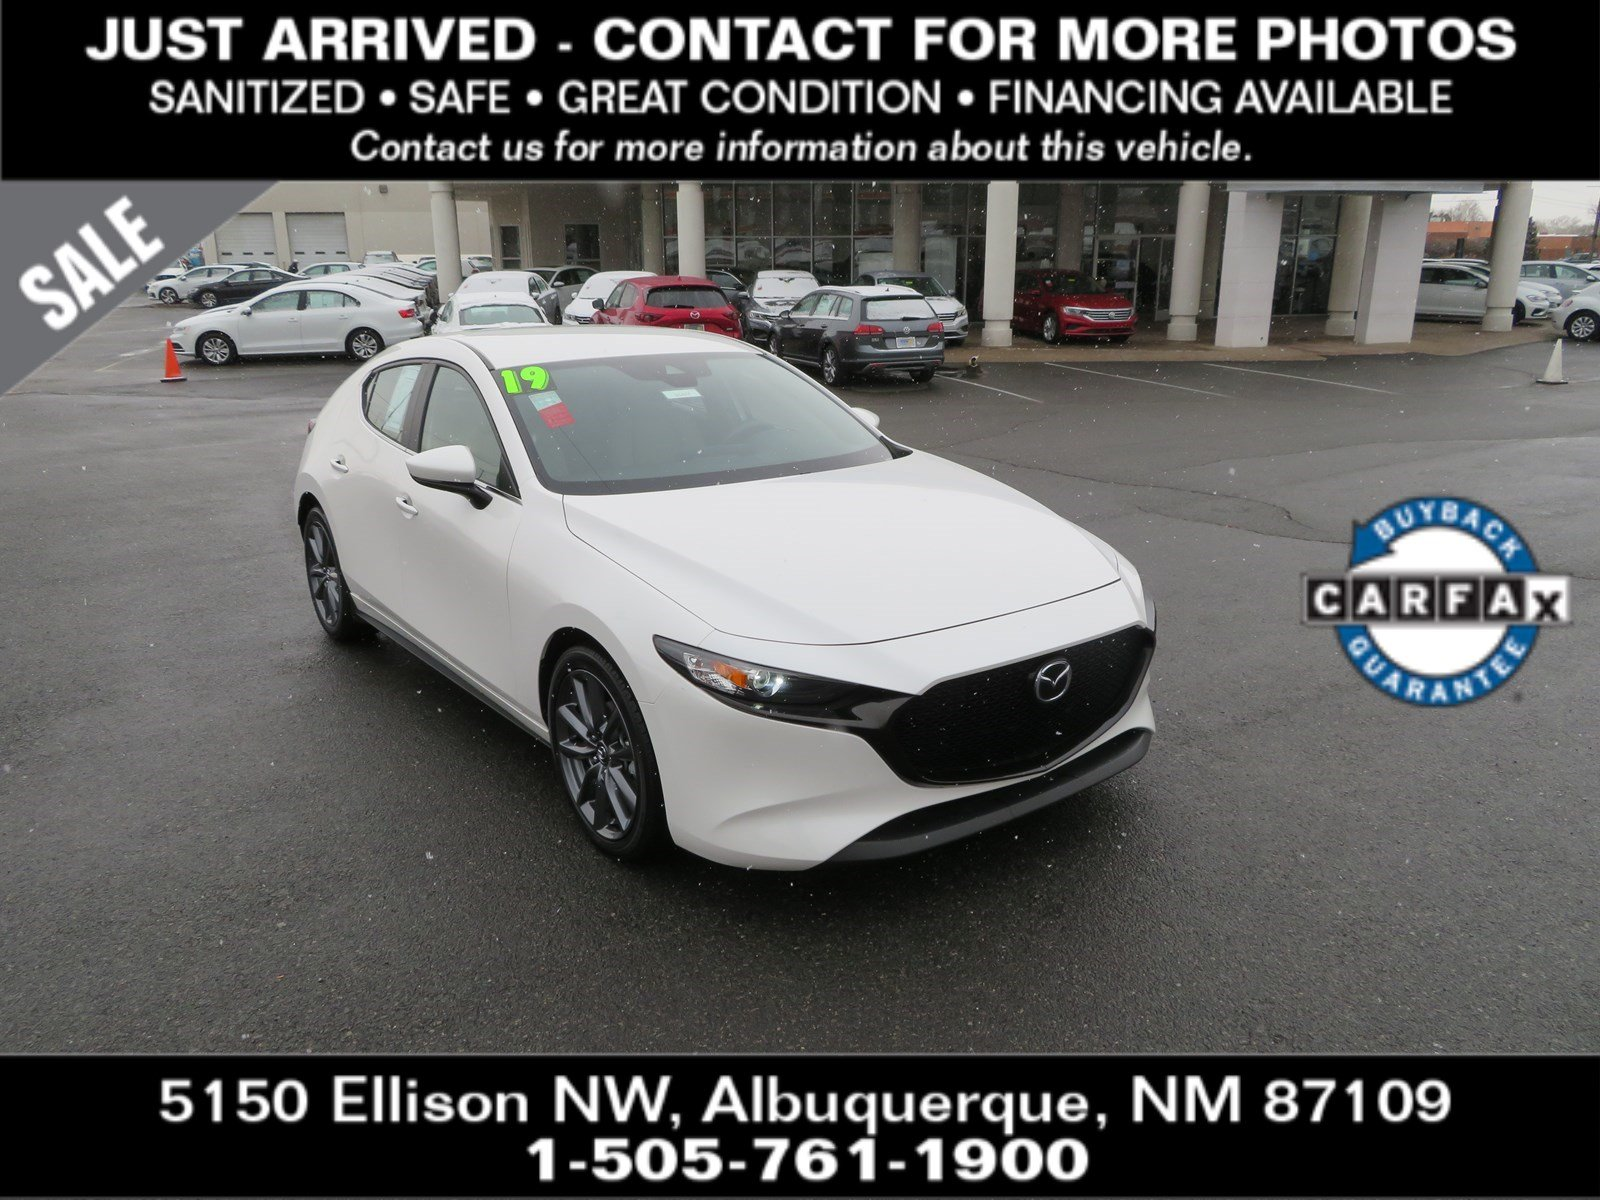 Certified Pre-Owned 2019 MAZDA MAZDA3 5-DOOR Preferred